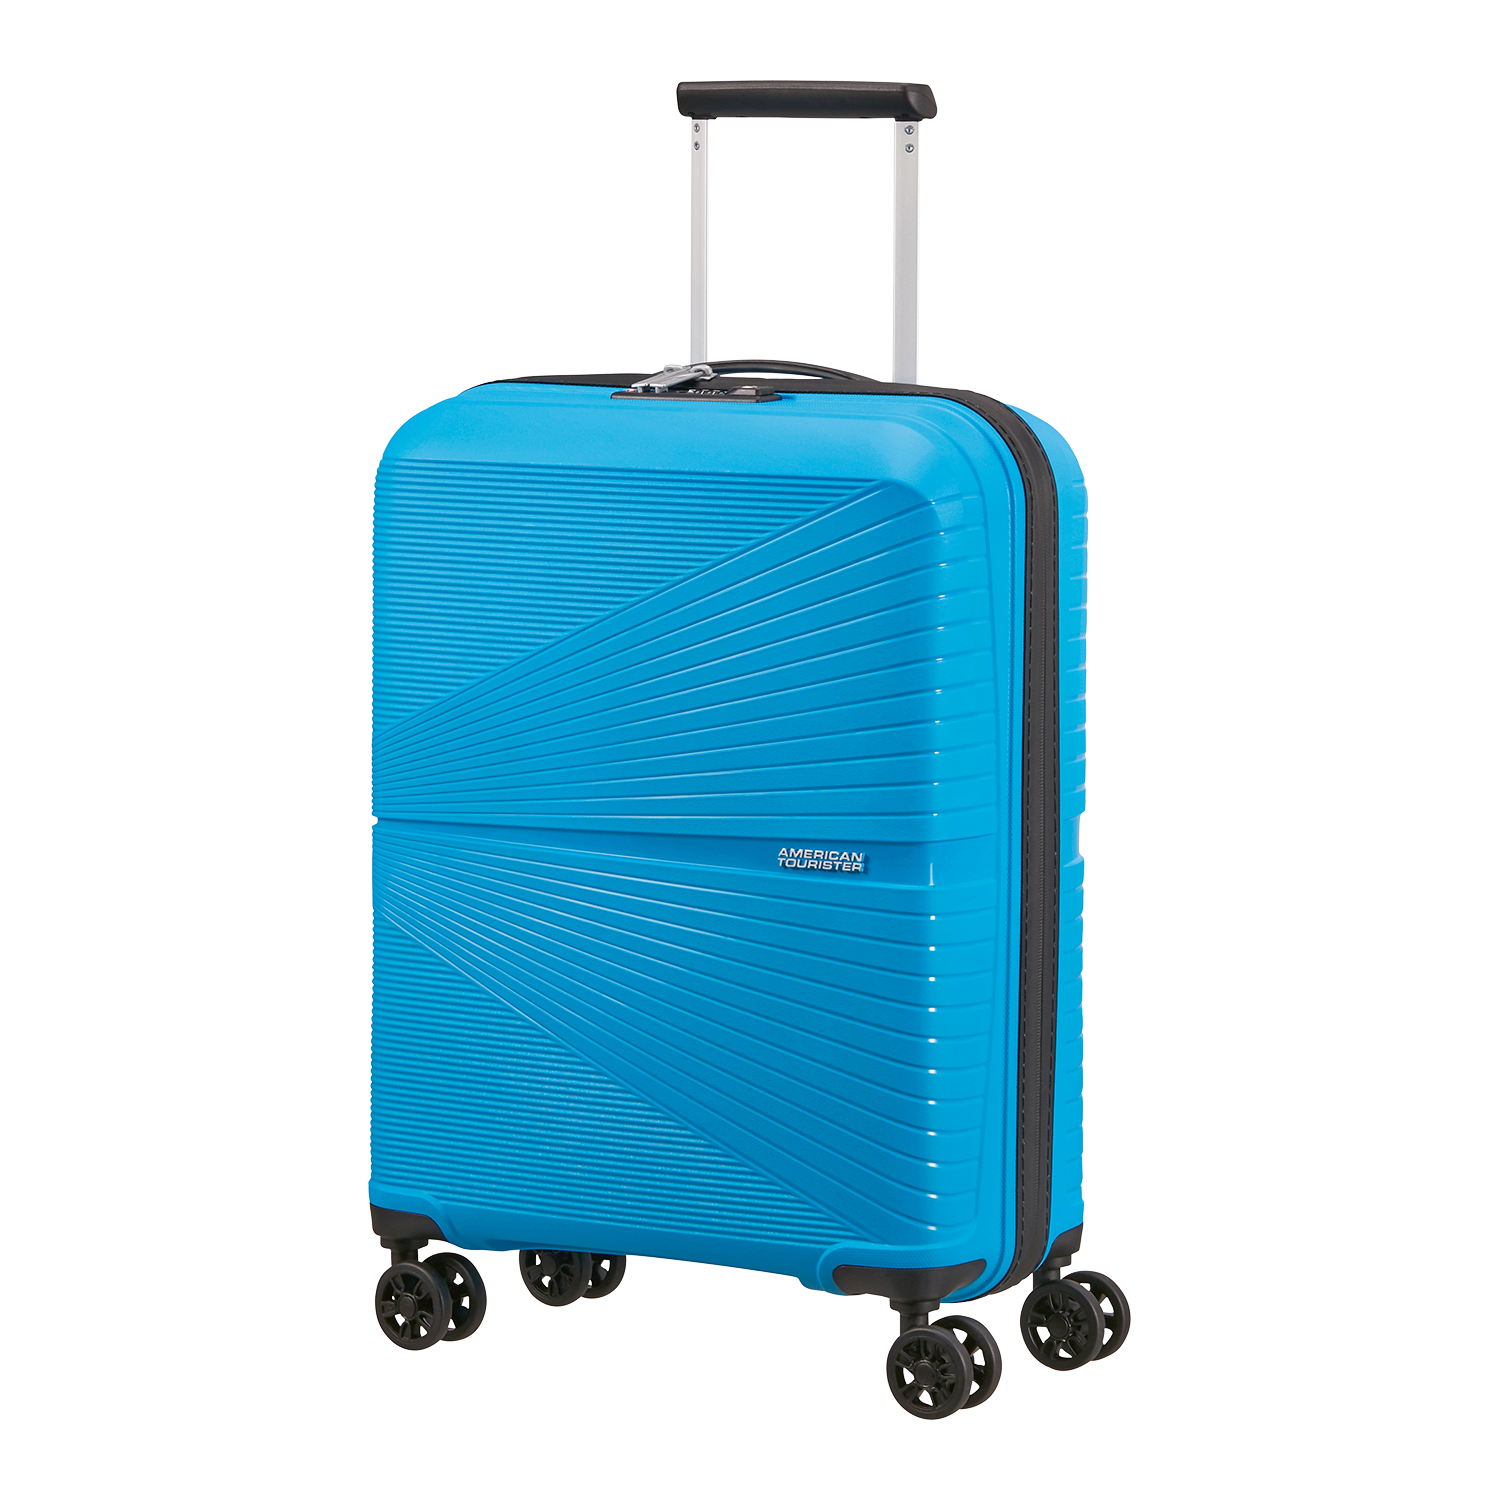 American Tourister Airconic Trolley 55, Sporty Blue